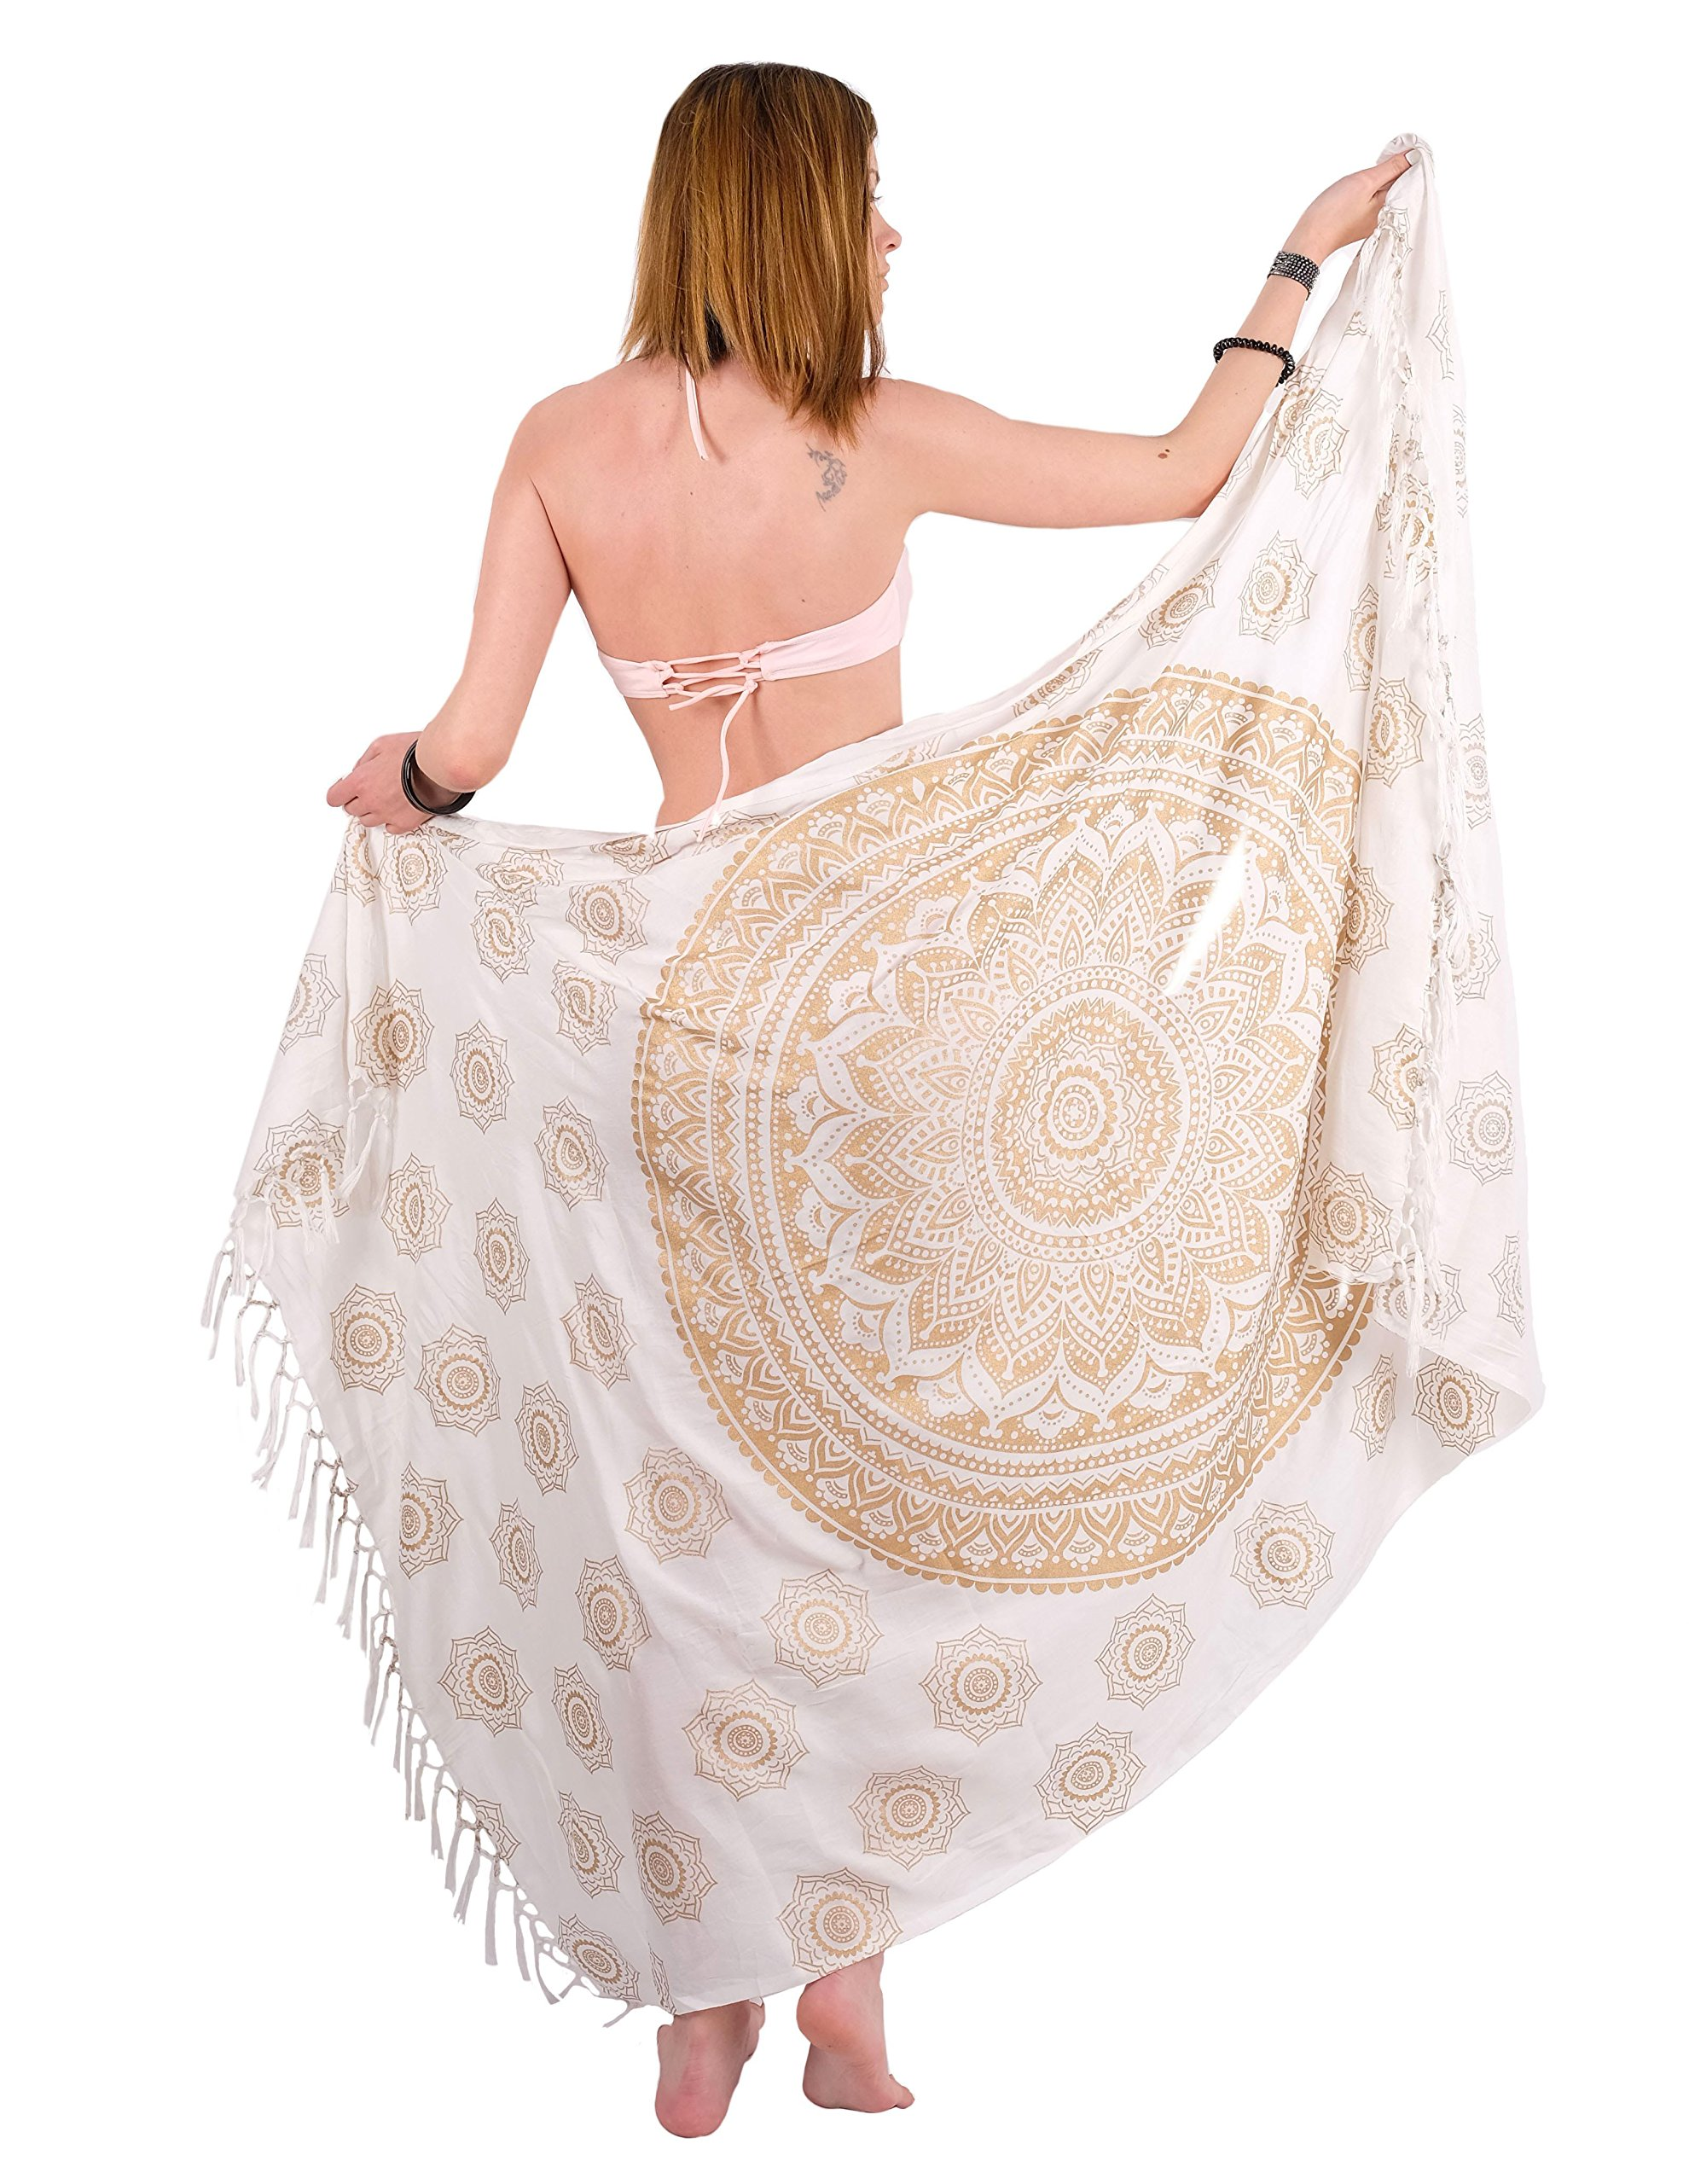 Boho Chic Sarong Gorgeous Hand-Printed Bohemian Pareo Endlessly Versatile Uses Bikini Swimsuit Cover Up,Beach Blanket,Tapestry,Dress,Wall Hanging,Throw by Mandala Life ART,Gold Lotus,Large